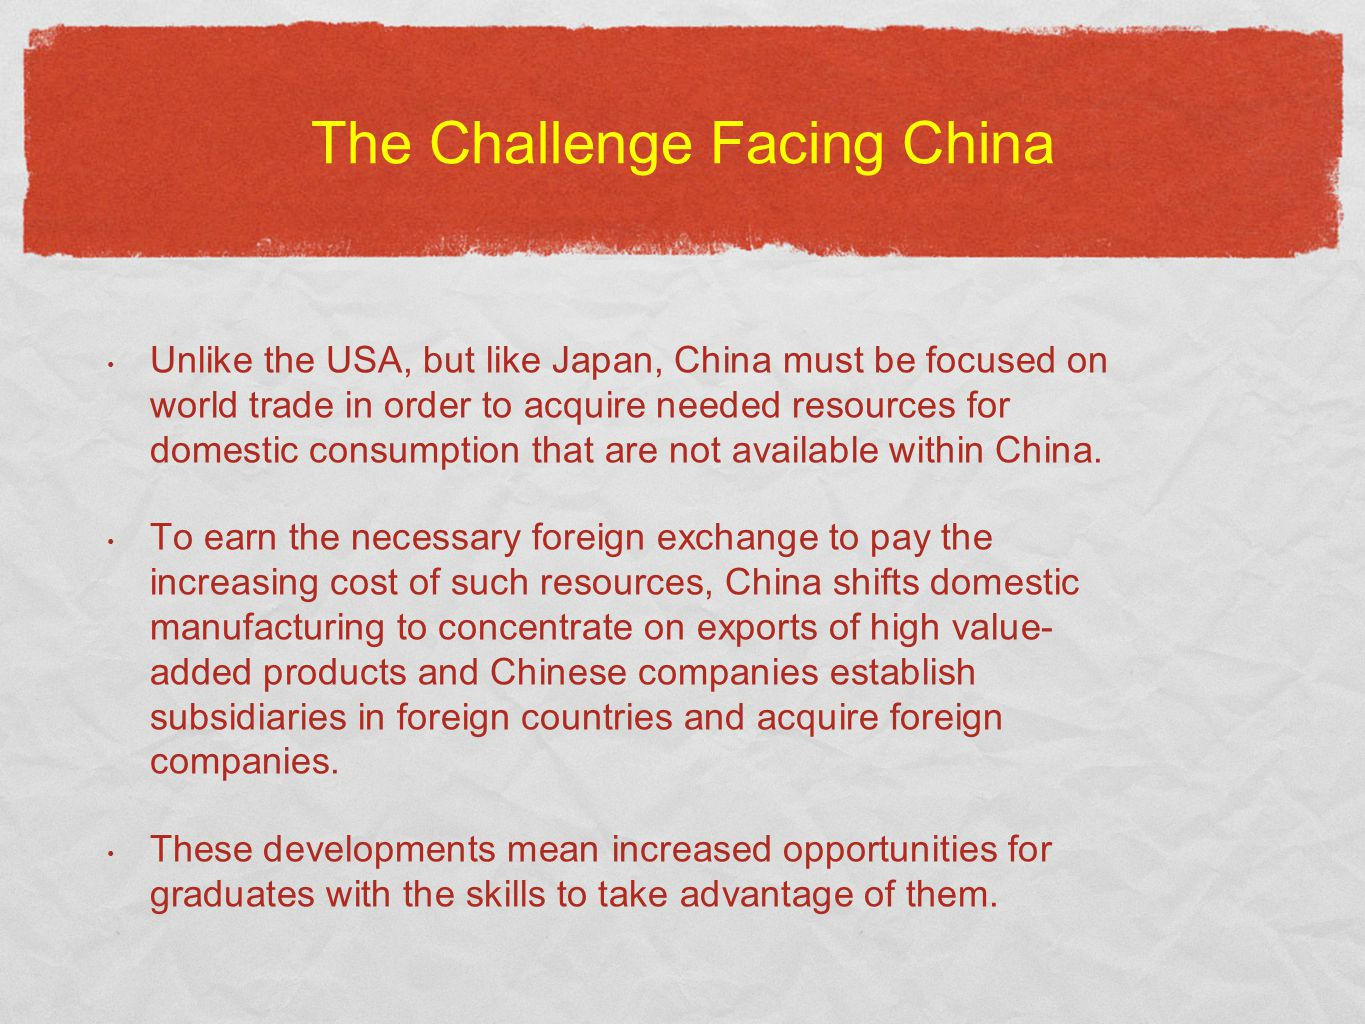 The Challenge Facing China Unlike the USA, but like Japan, China must be focused on world trade in order to acquire needed resources for domestic consumption that are not available within China.